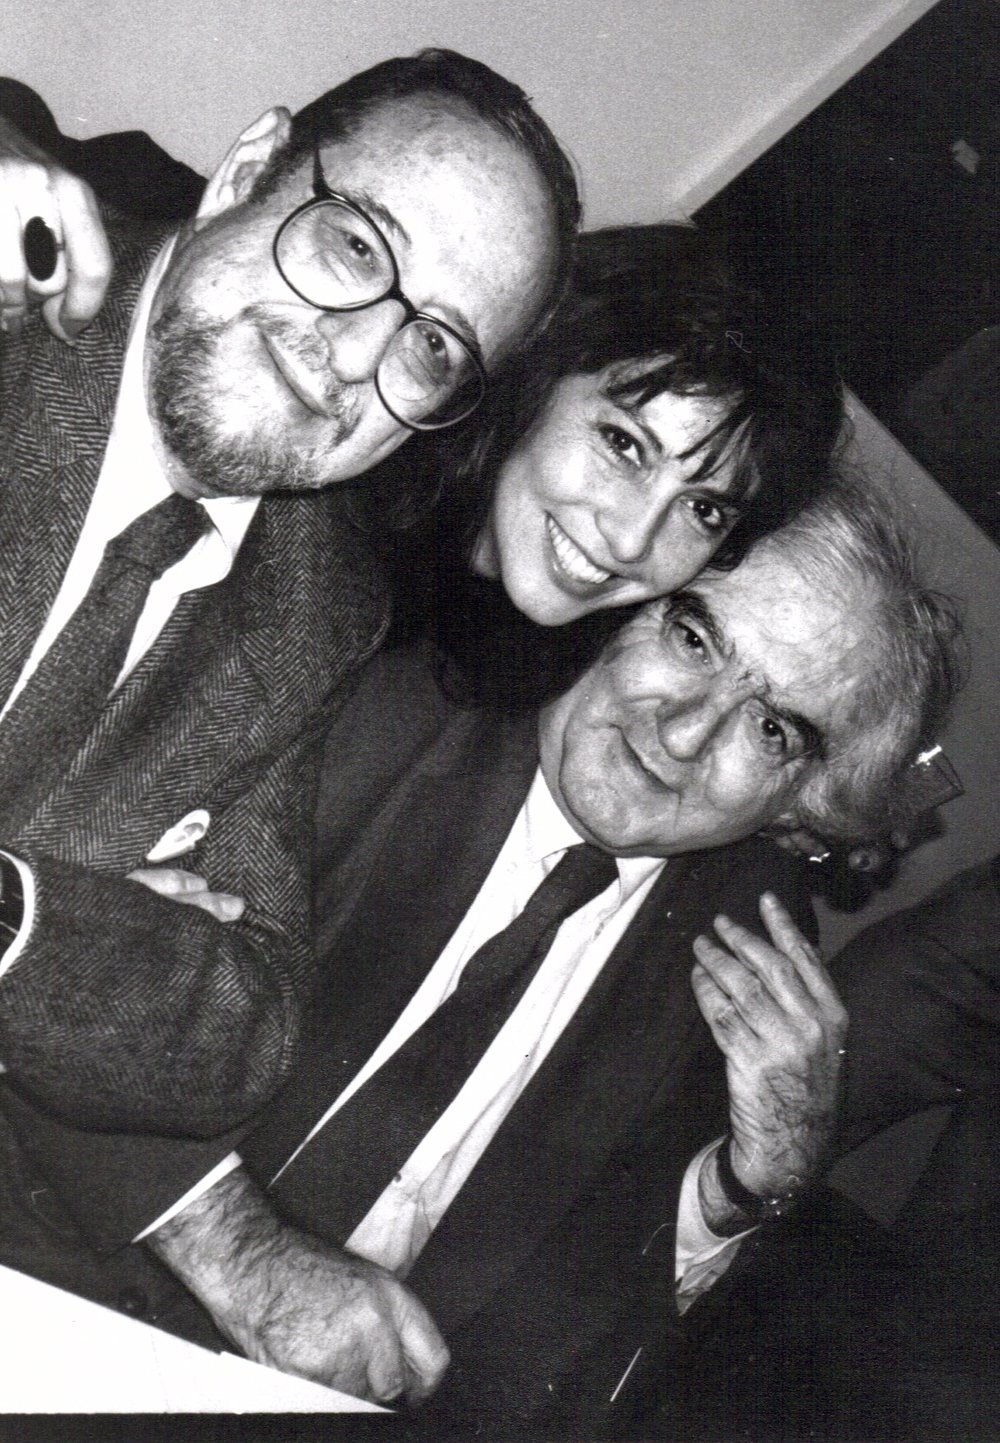 Arnold Newman Loren Ellis Cornell Capa at National Arts Club Photo Admin. club luncheon cerca 1995